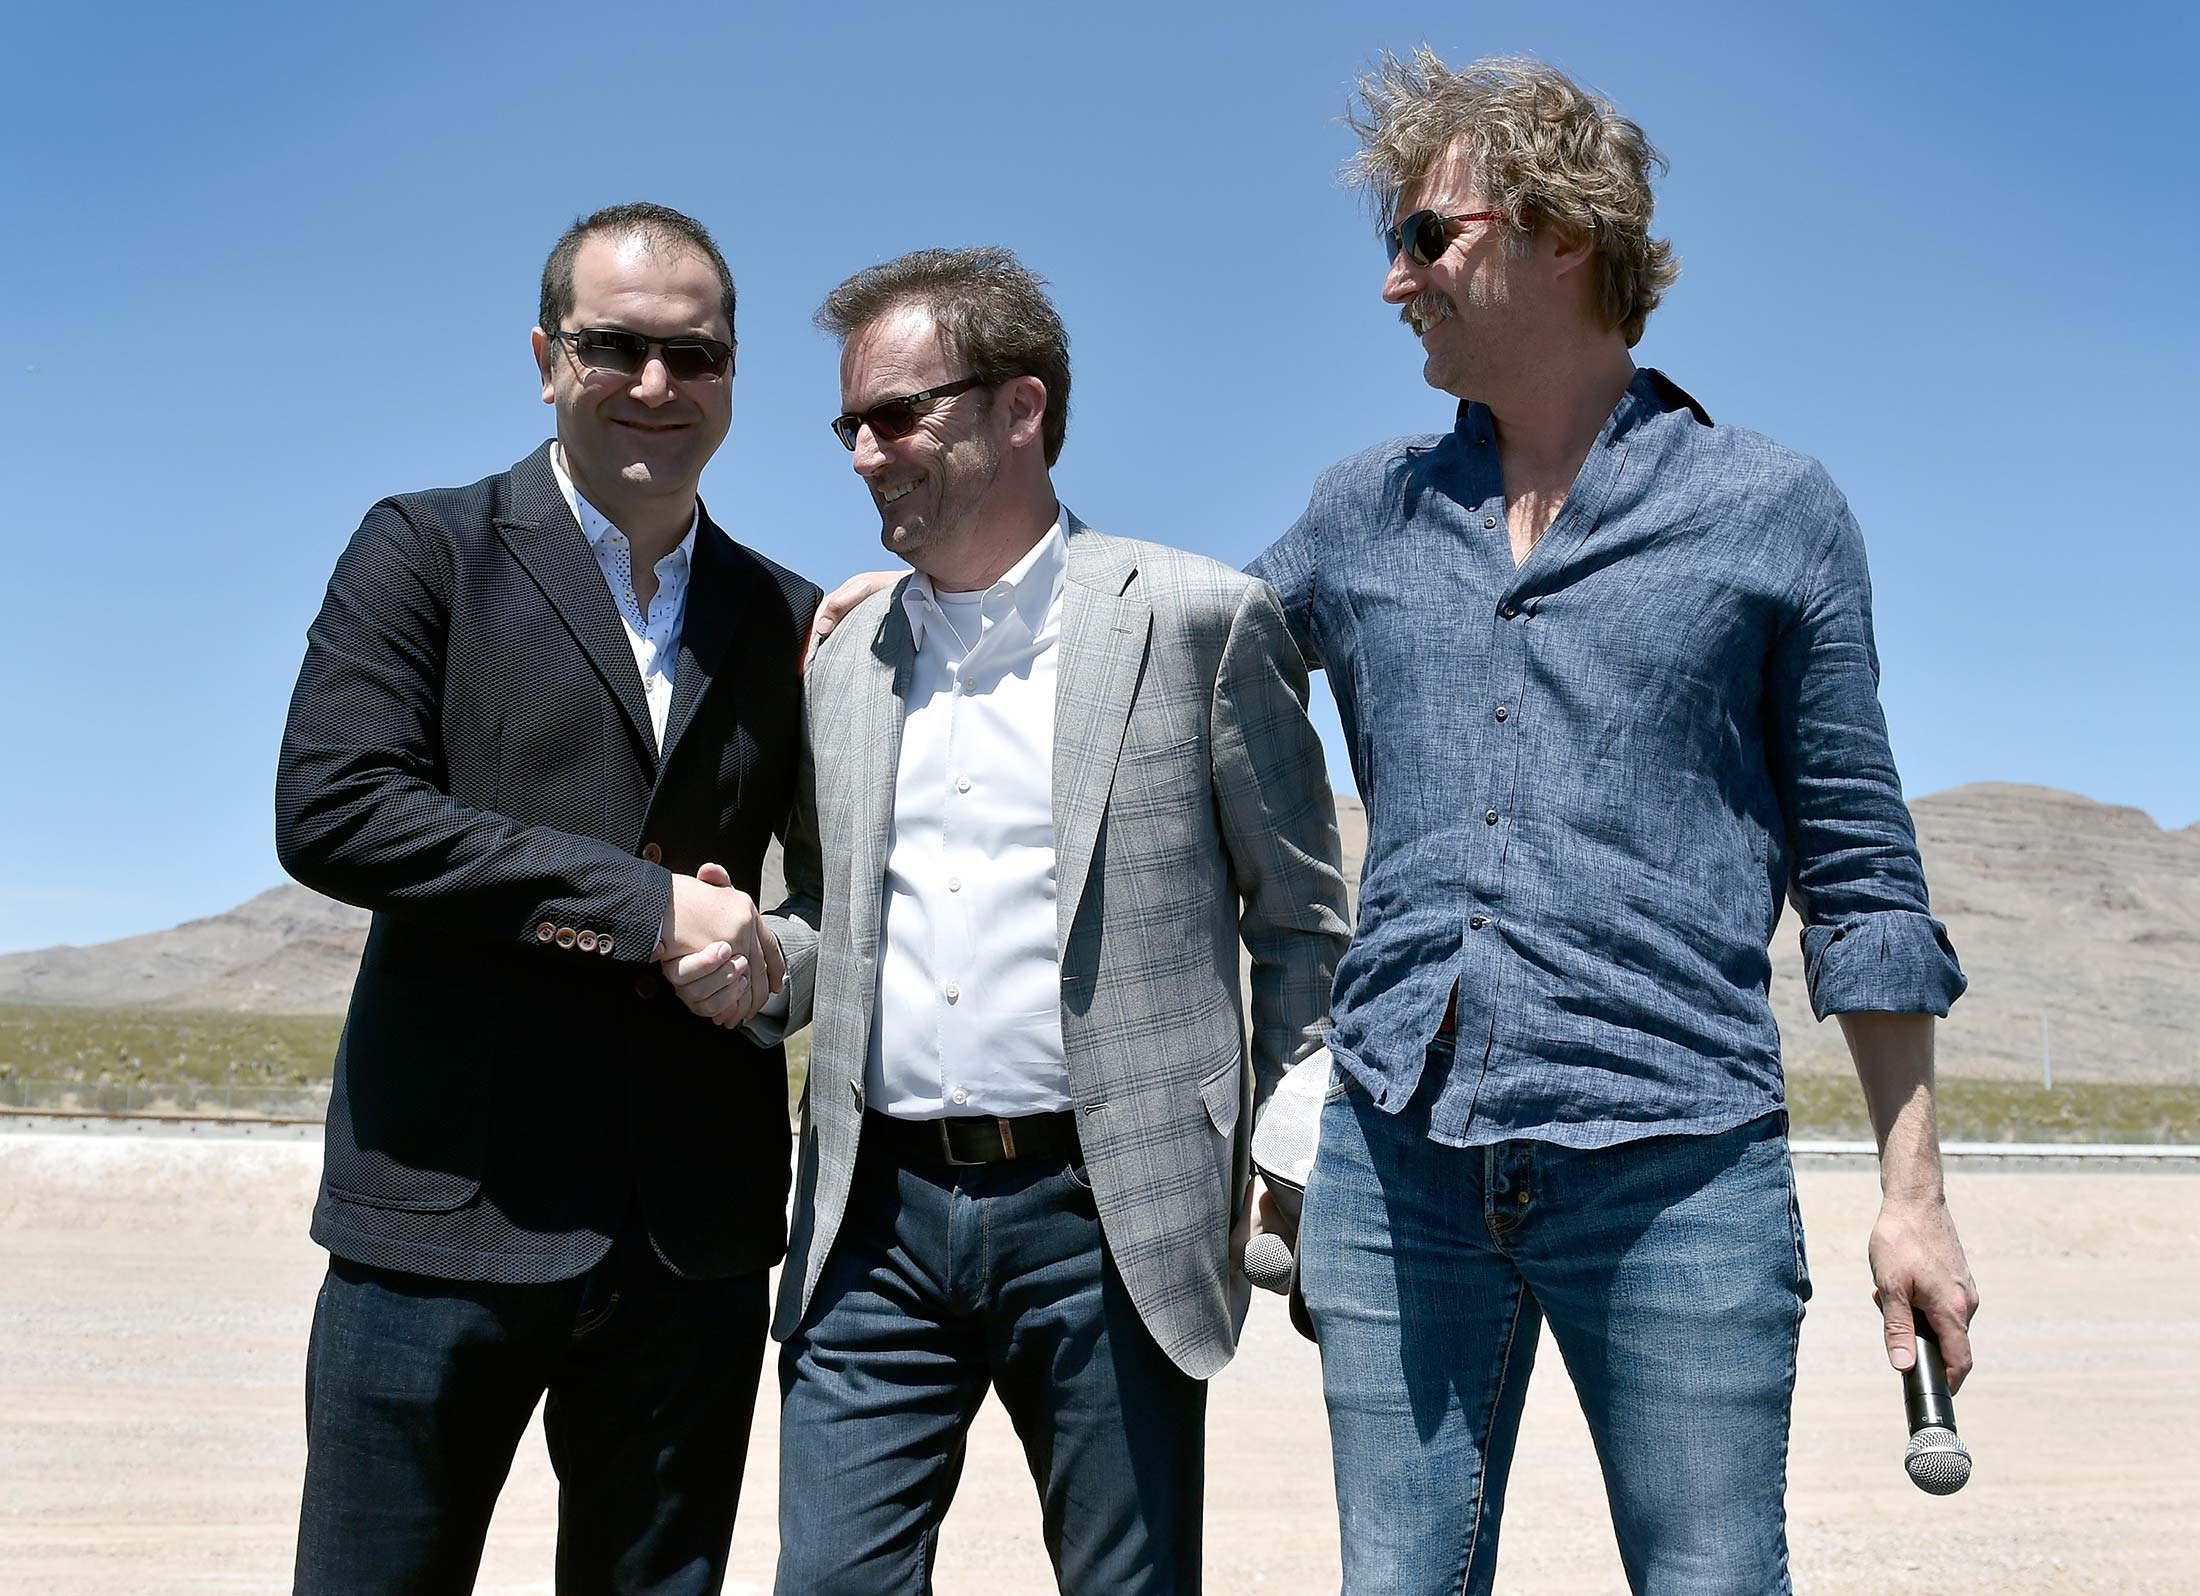 NORTH LAS VEGAS, NV - MAY 11:  (L-R) Hyperloop One Co-Founder & Executive Chairman Shervin Pishevar, Hyperloop One Chief Executive Officer Rob Lloyd and Co-Founder & Chief Technology Officer Brogan BamBrogan speak during the first test of the propulsion system at the Hyperloop One Test and Safety site on May 11, 2016 in North Las Vegas, Nevada. The company plans to create a fully operational hyperloop system by 2020.  (Photo by David Becker/Getty Images,)